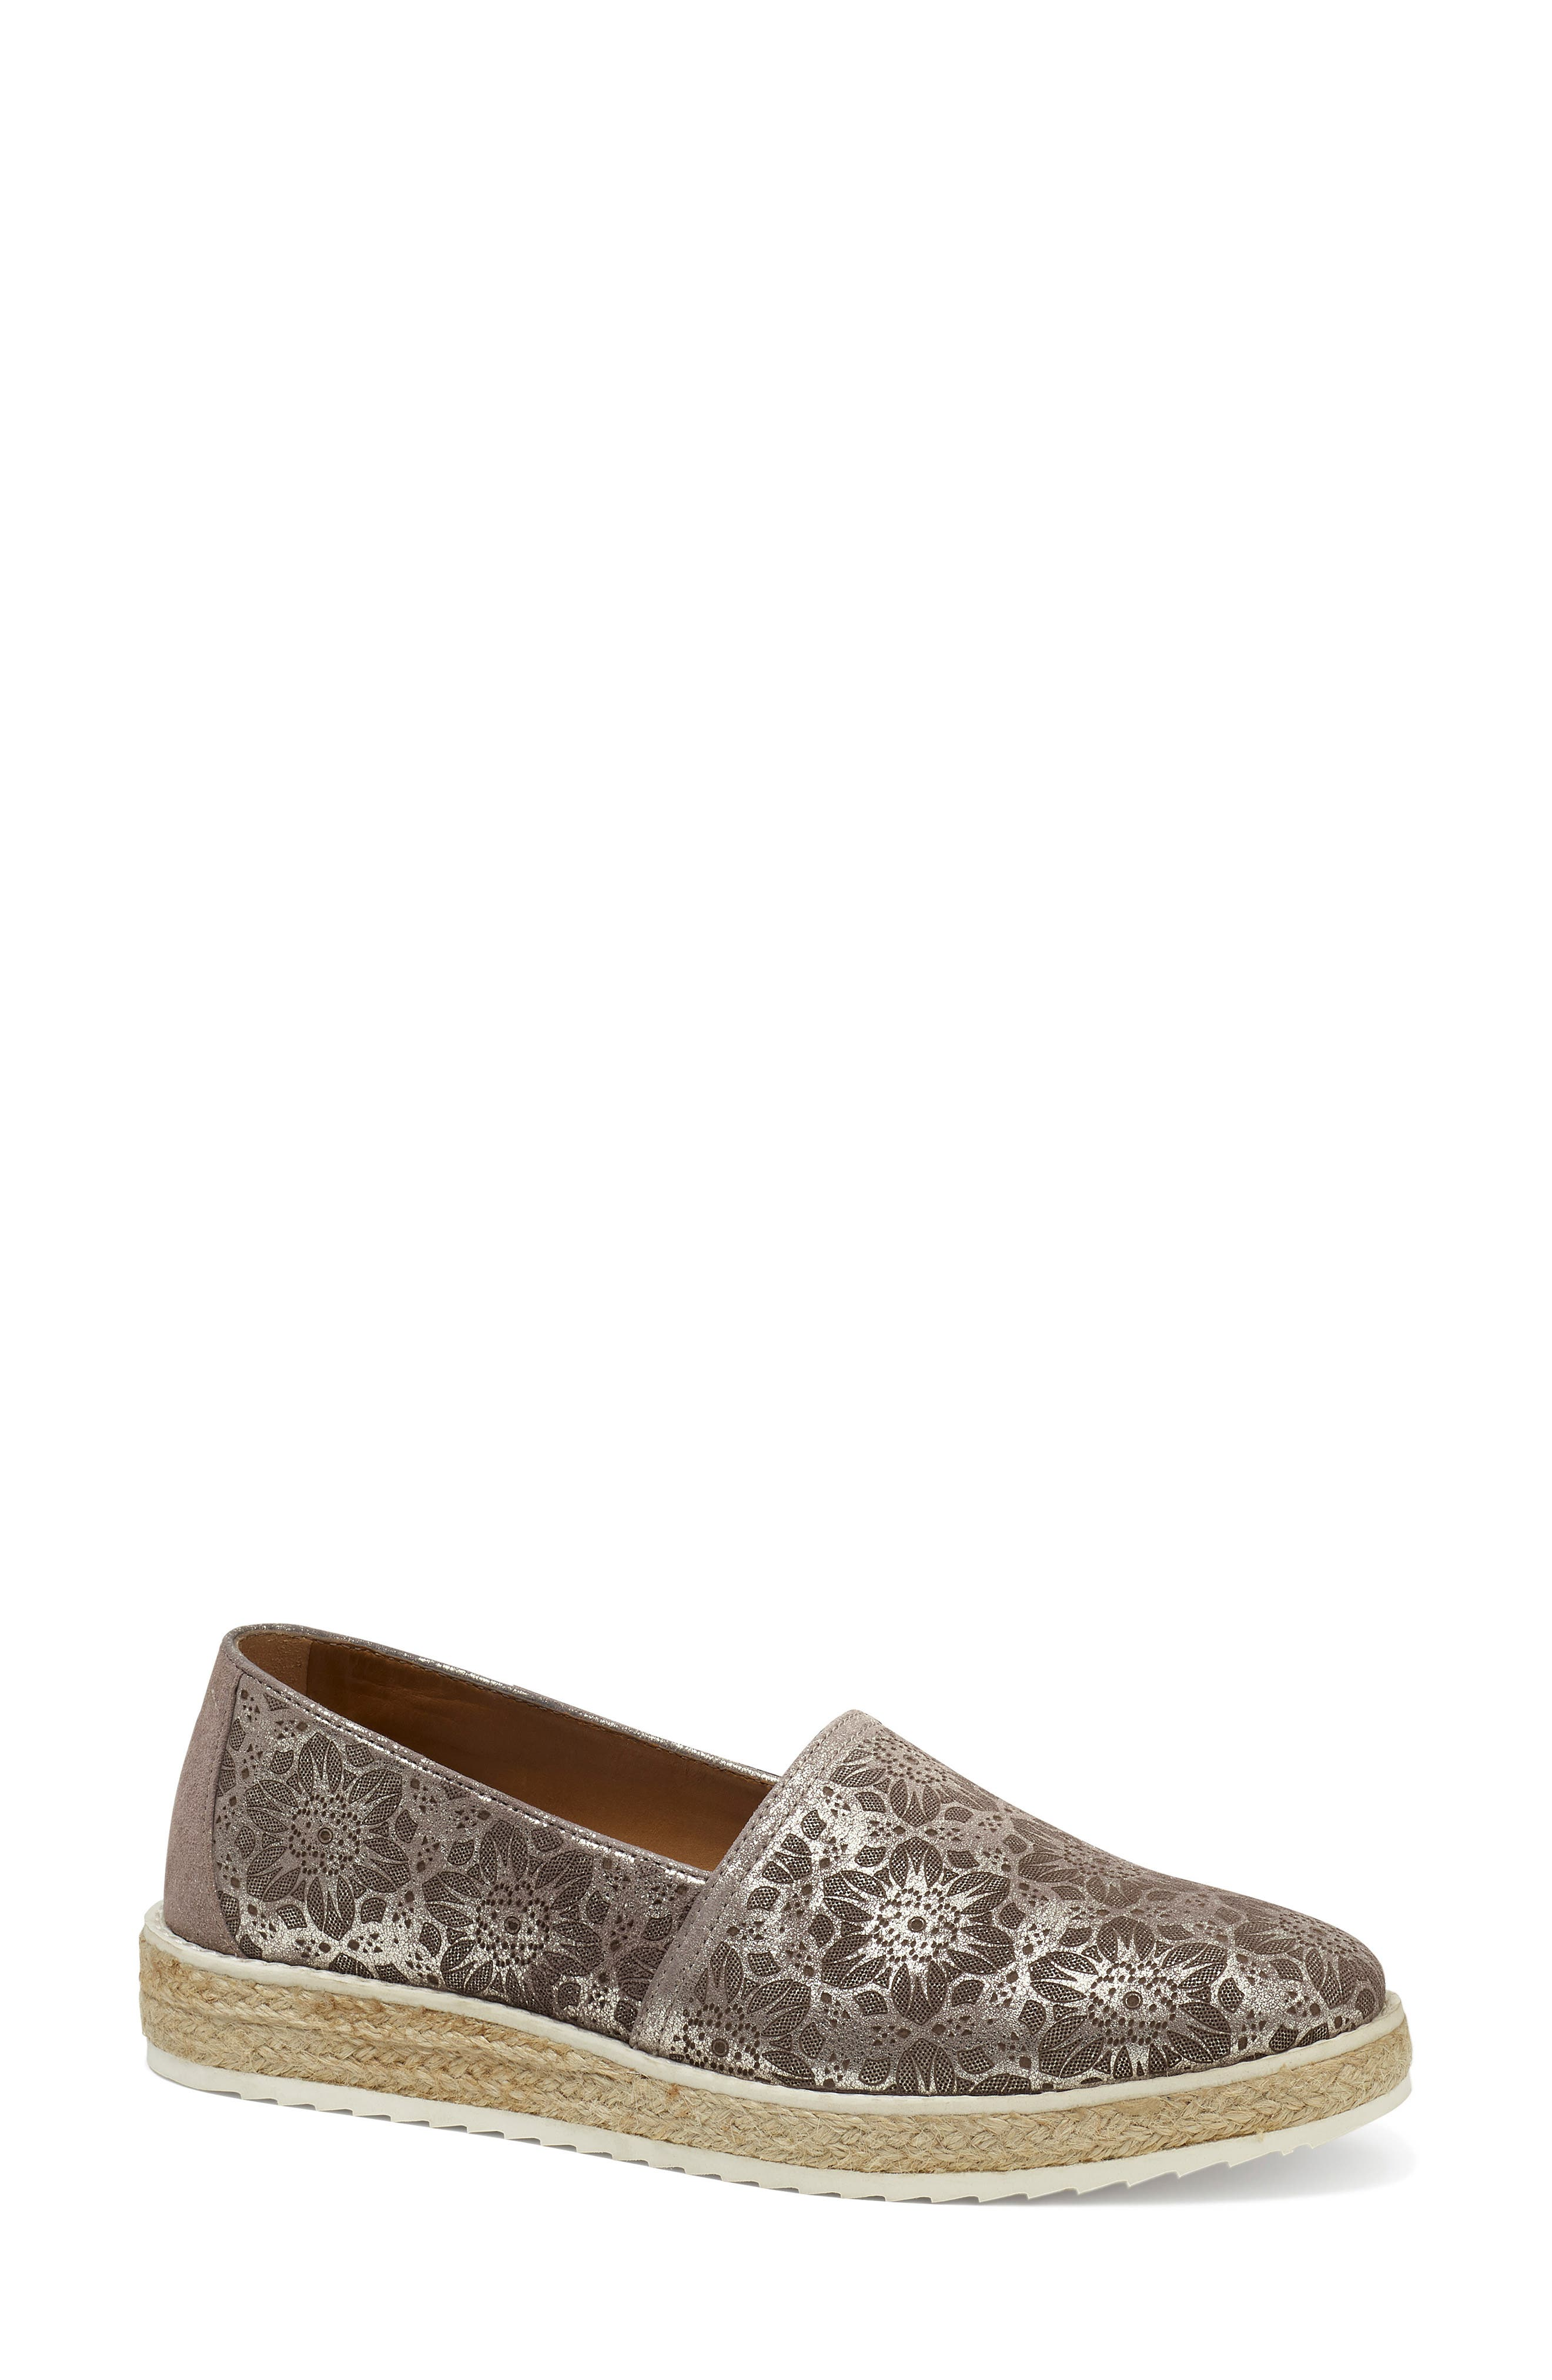 Cailyn Flat,                             Main thumbnail 1, color,                             PEWTER METALLIC SUEDE